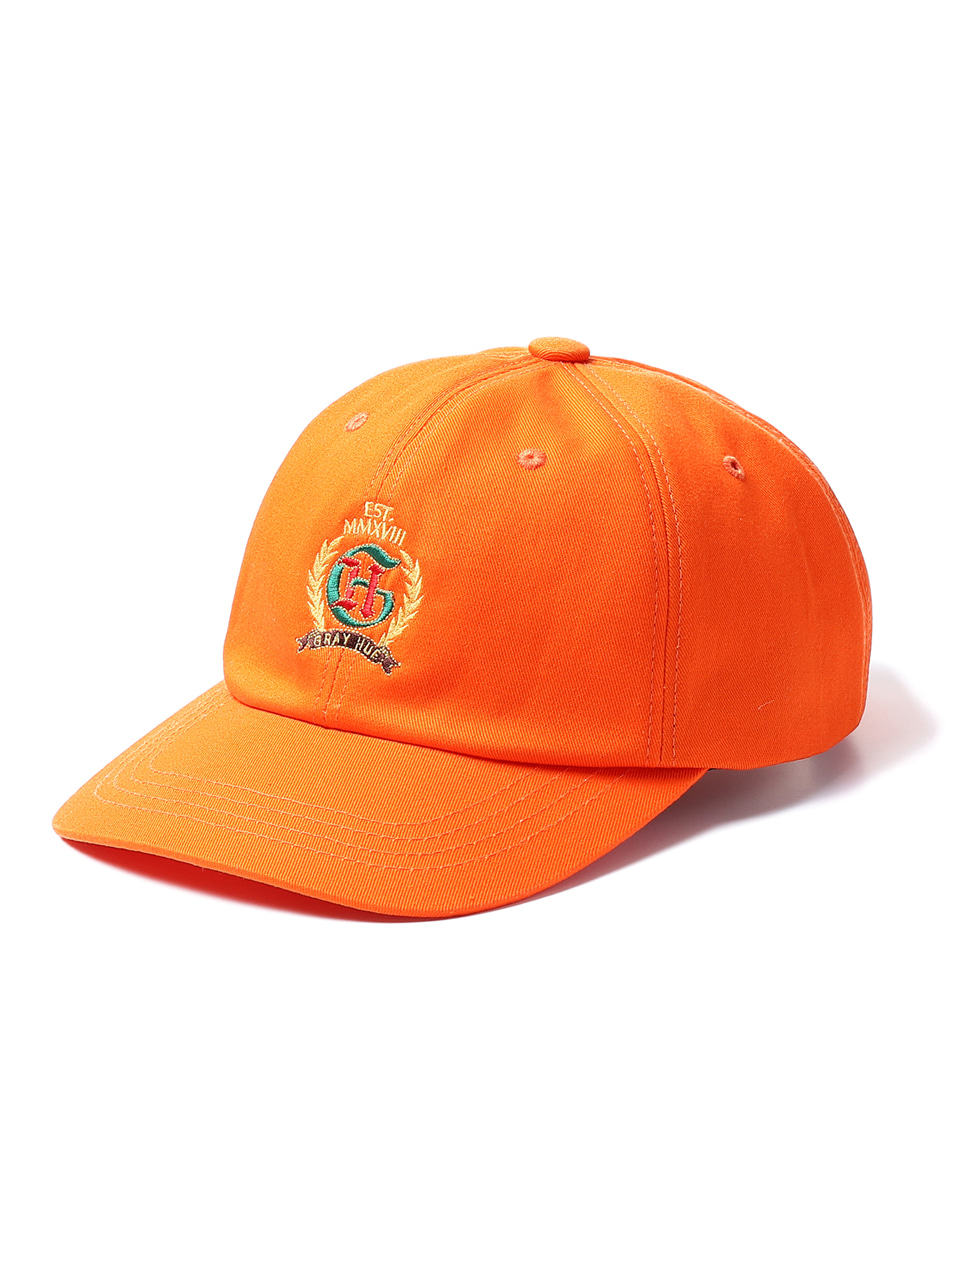 그레이휴CREST LOGO BALL CAP orange